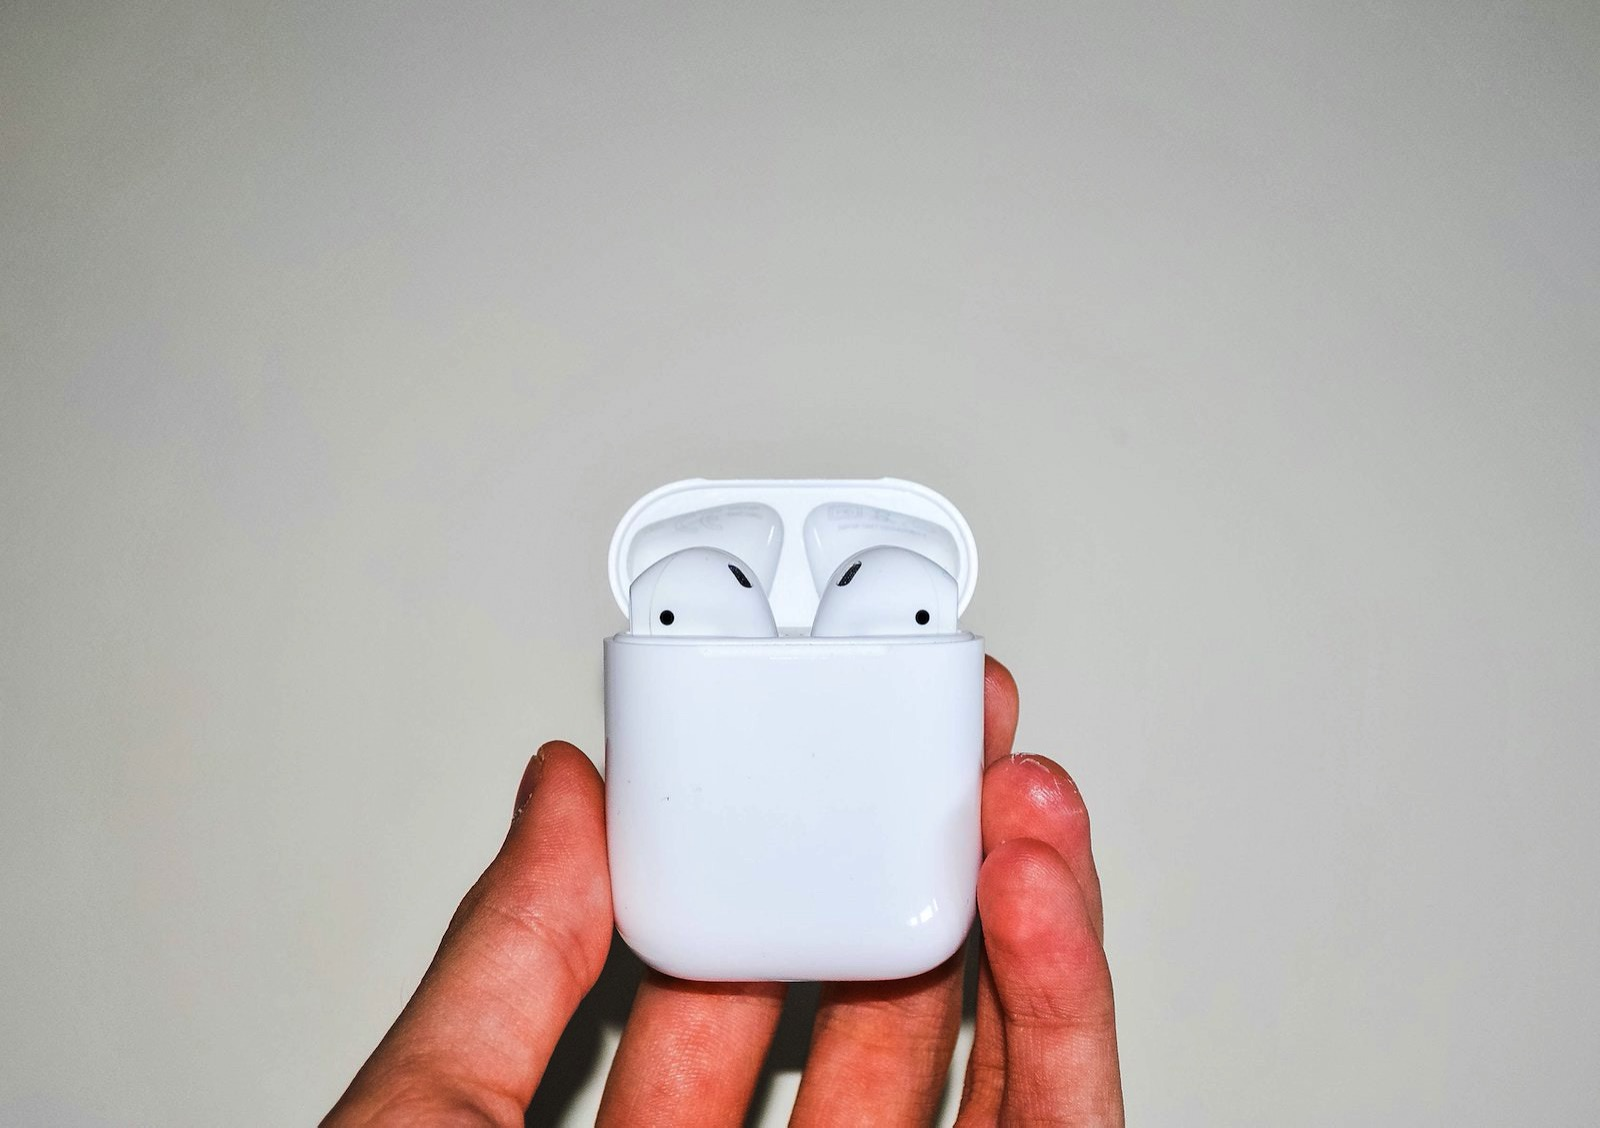 Antonio scalogna xO9B7LeJ3Yo unsplash airpods